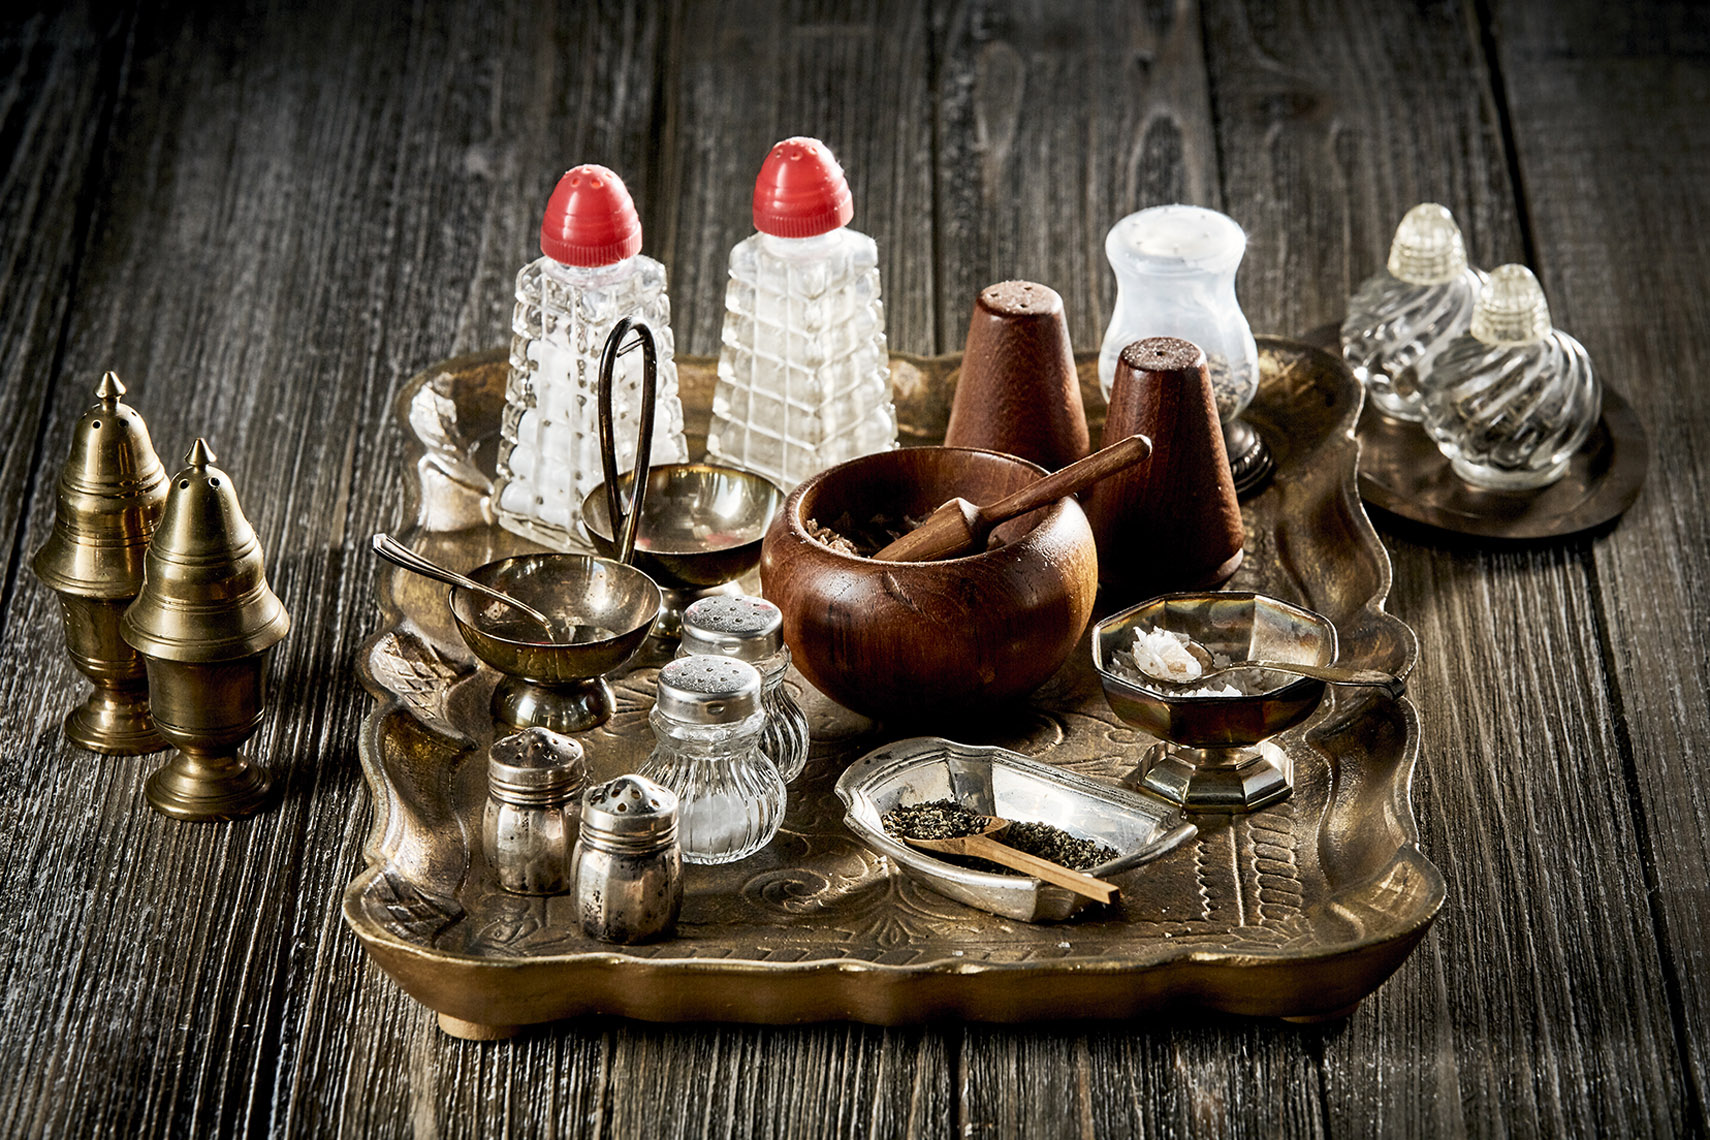 AlanCampbellPhotography, Vintage Salt_Pepper dispensers still life